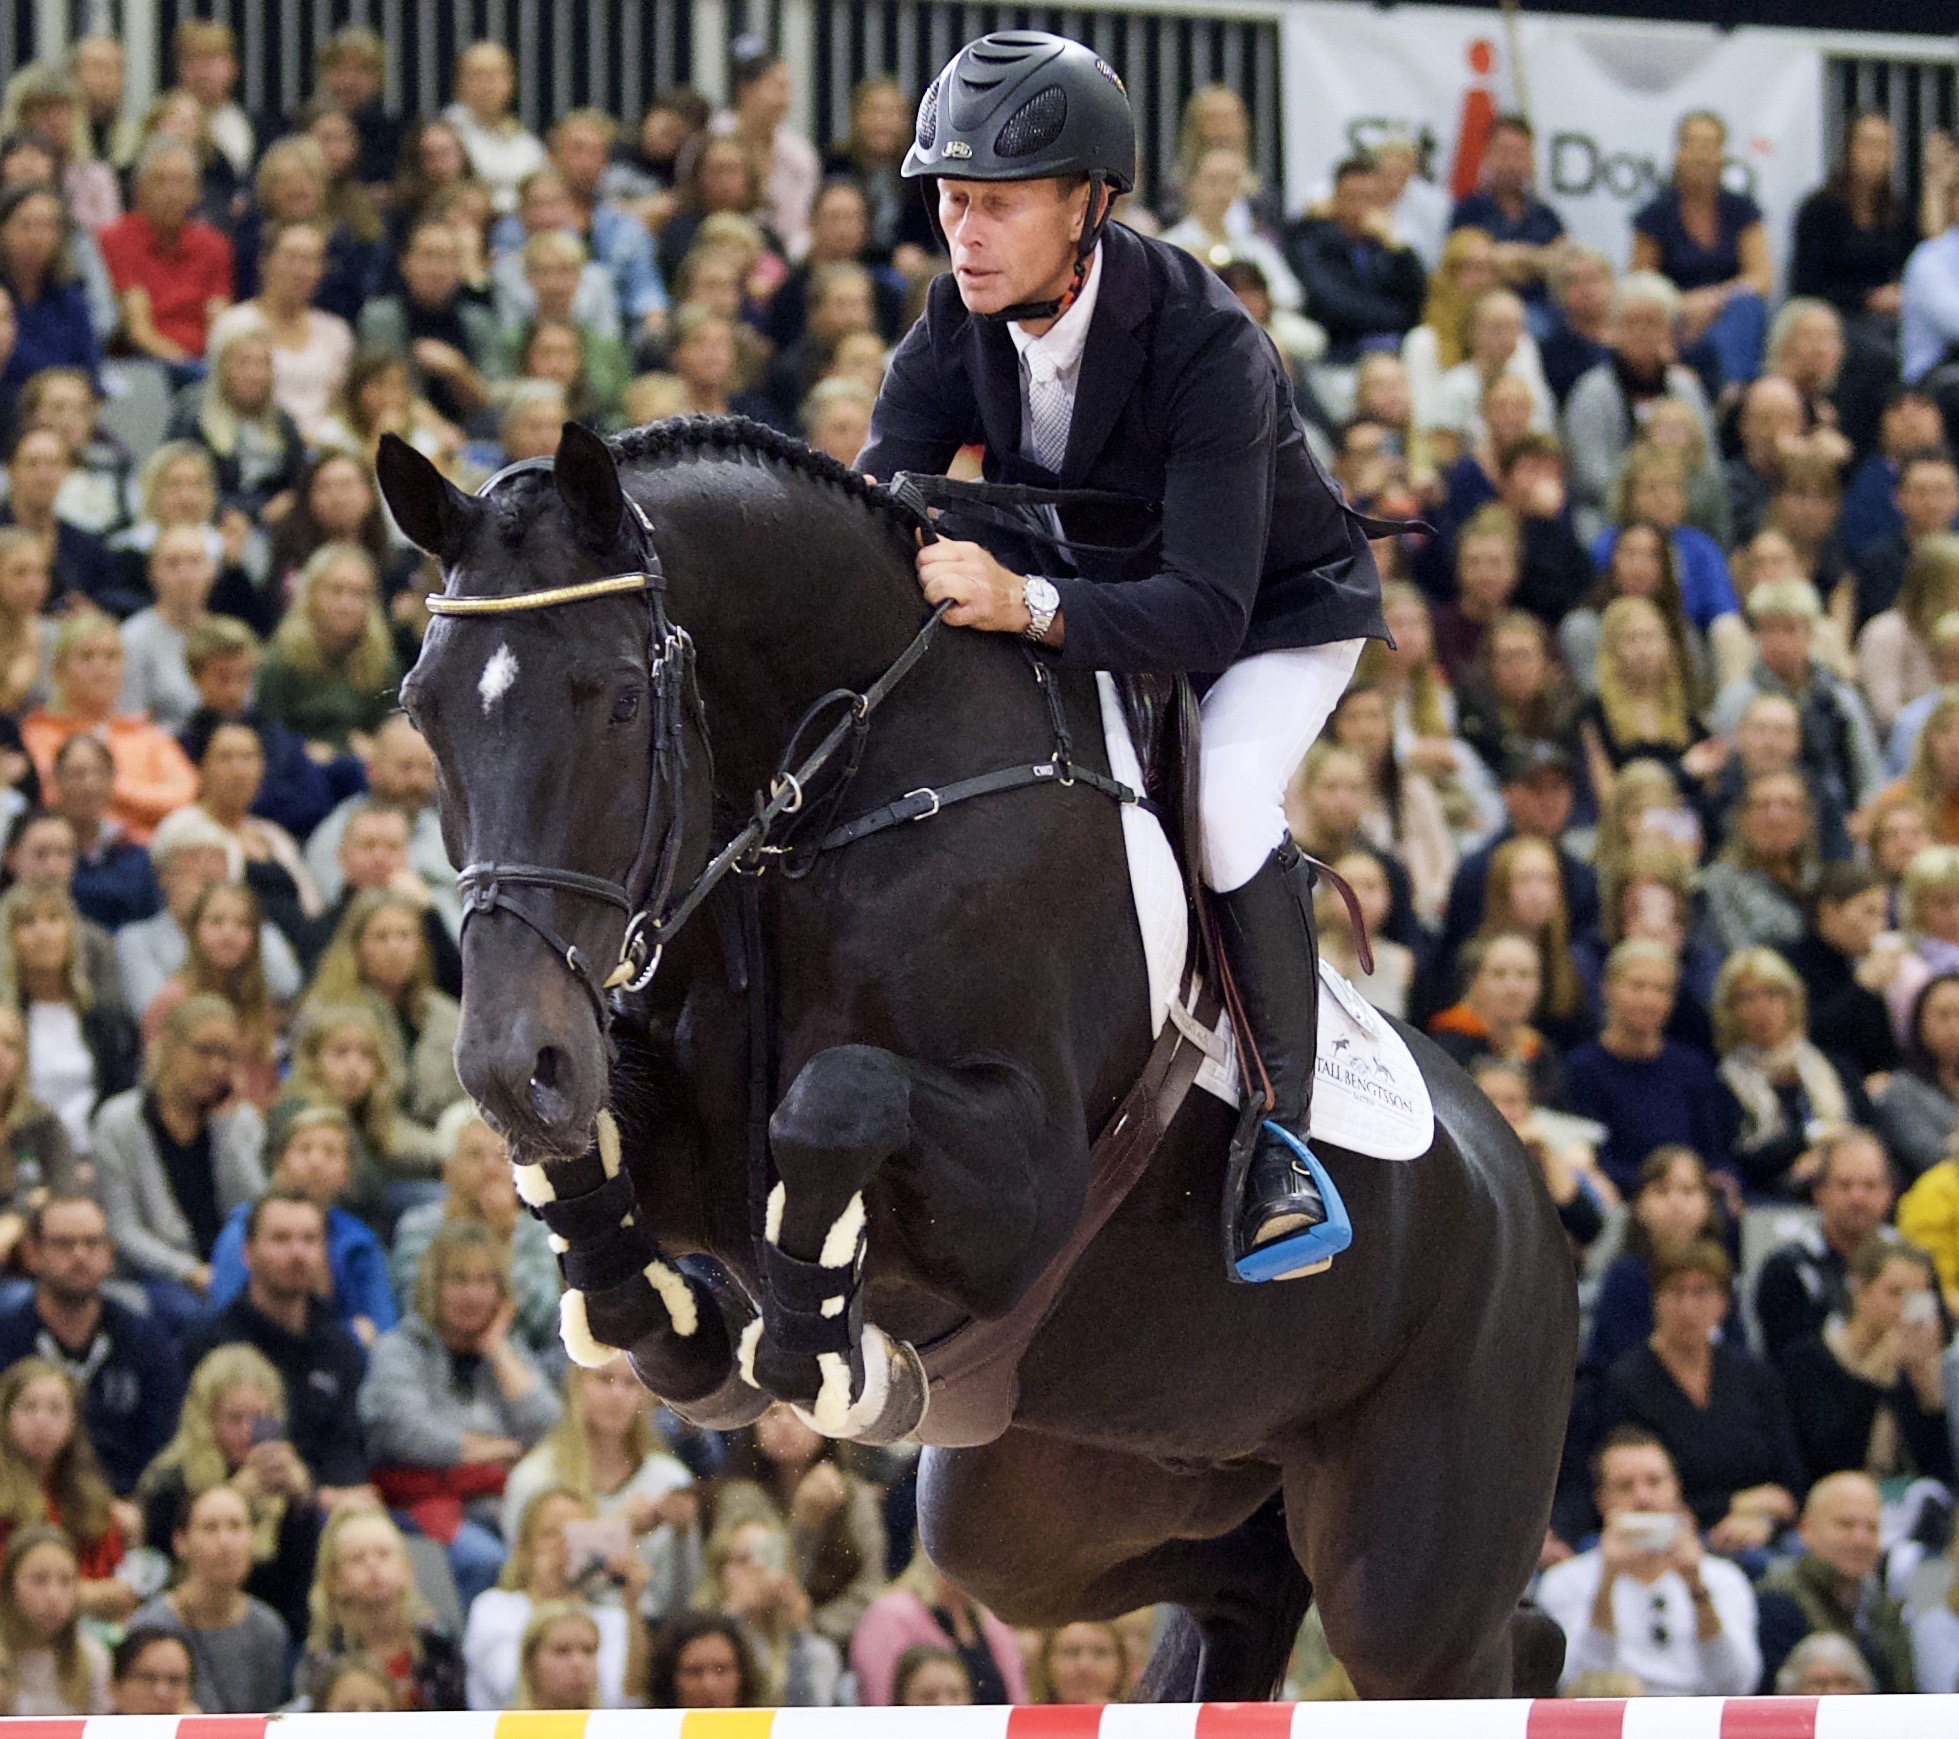 Several clear rounds in Wierden — News — News — Stall Bengtsson